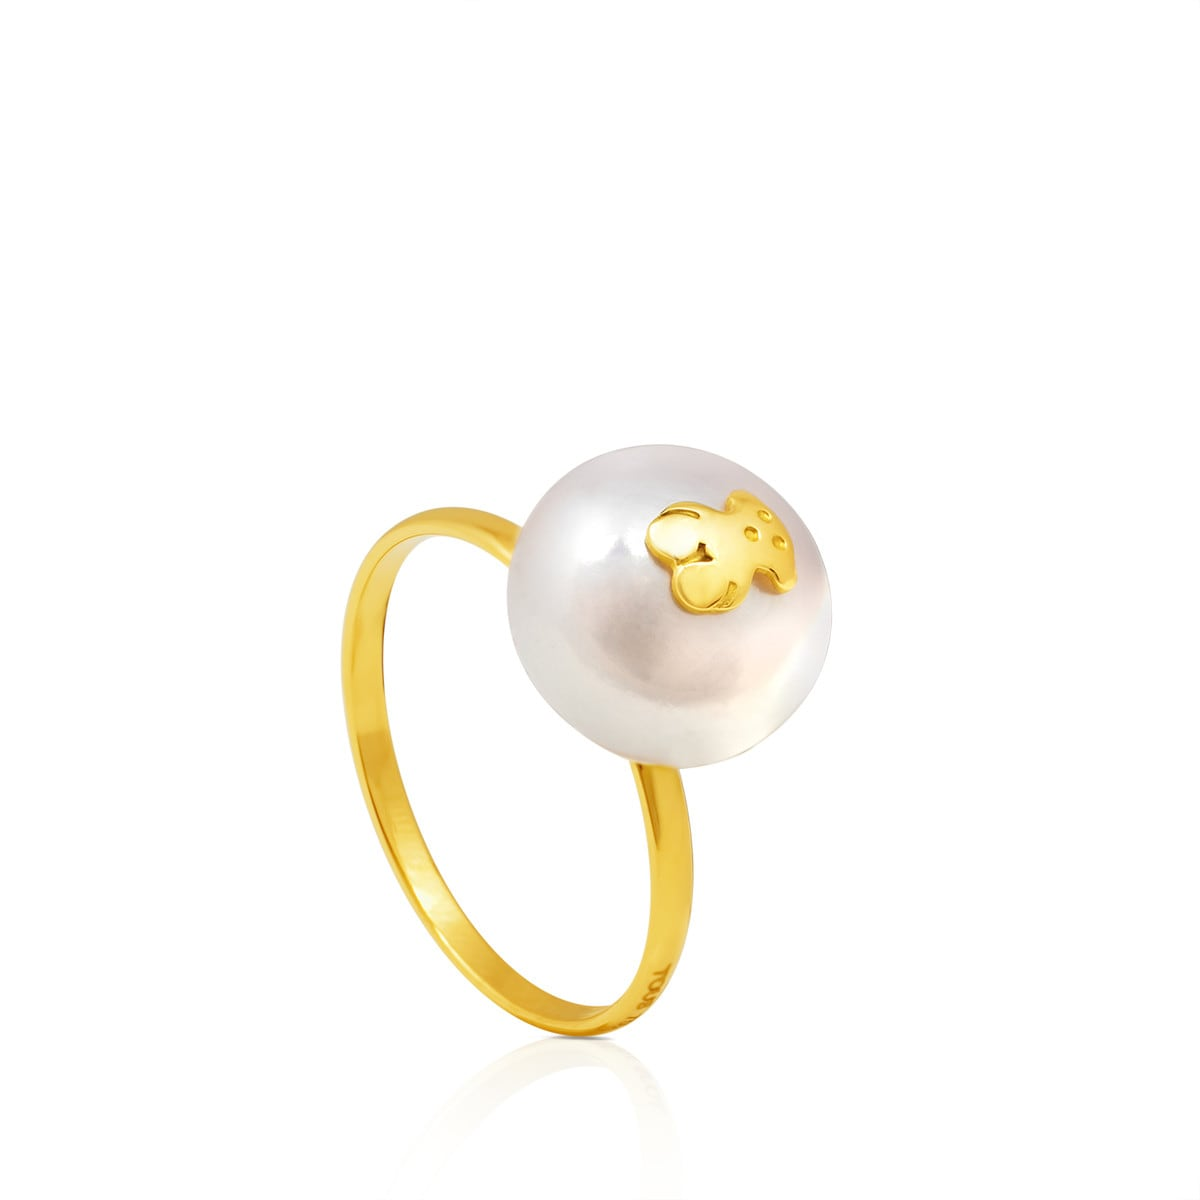 Gold Sweet Dolls Ring with Pearl